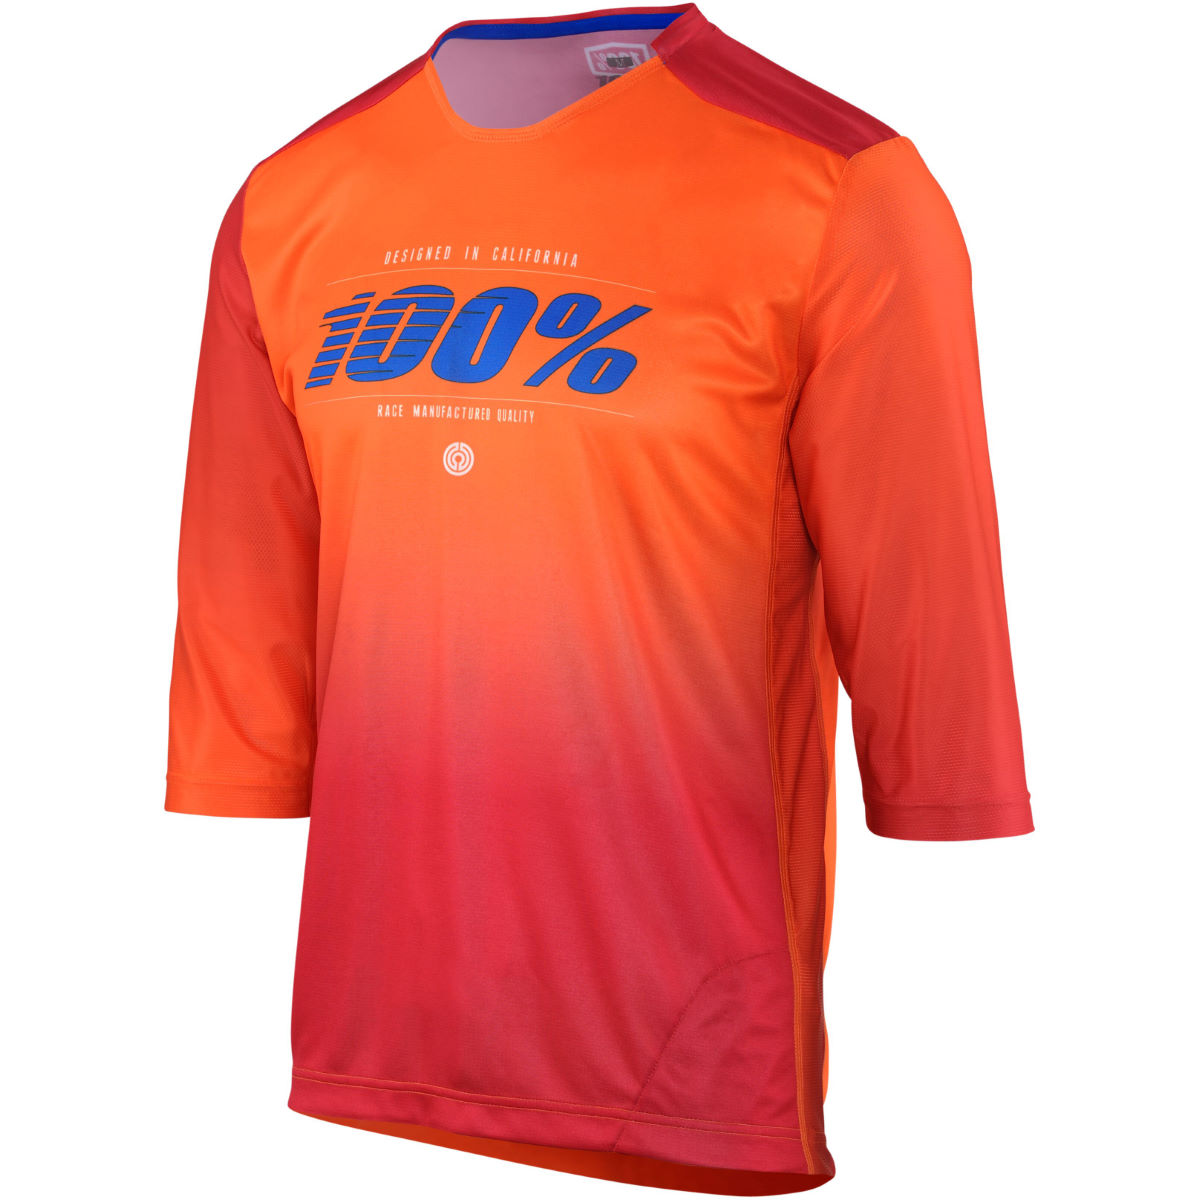 100% Airmatic Blaze 3/4 Jersey - Maillots